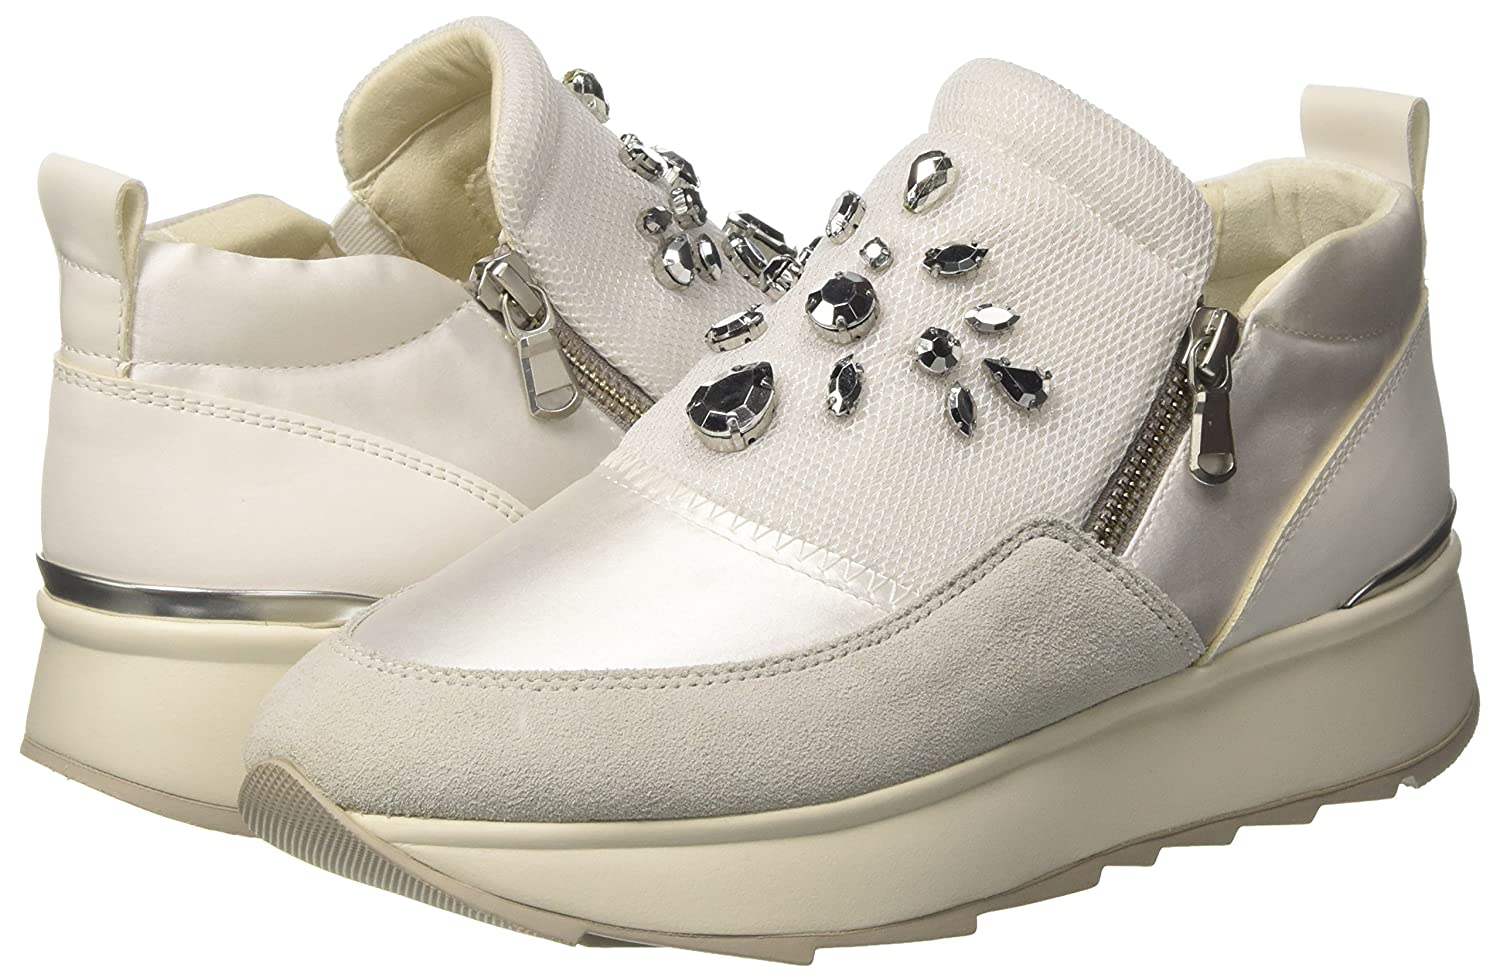 Geox Damen D Gendry Gendry Gendry A Turnschuhe aed487